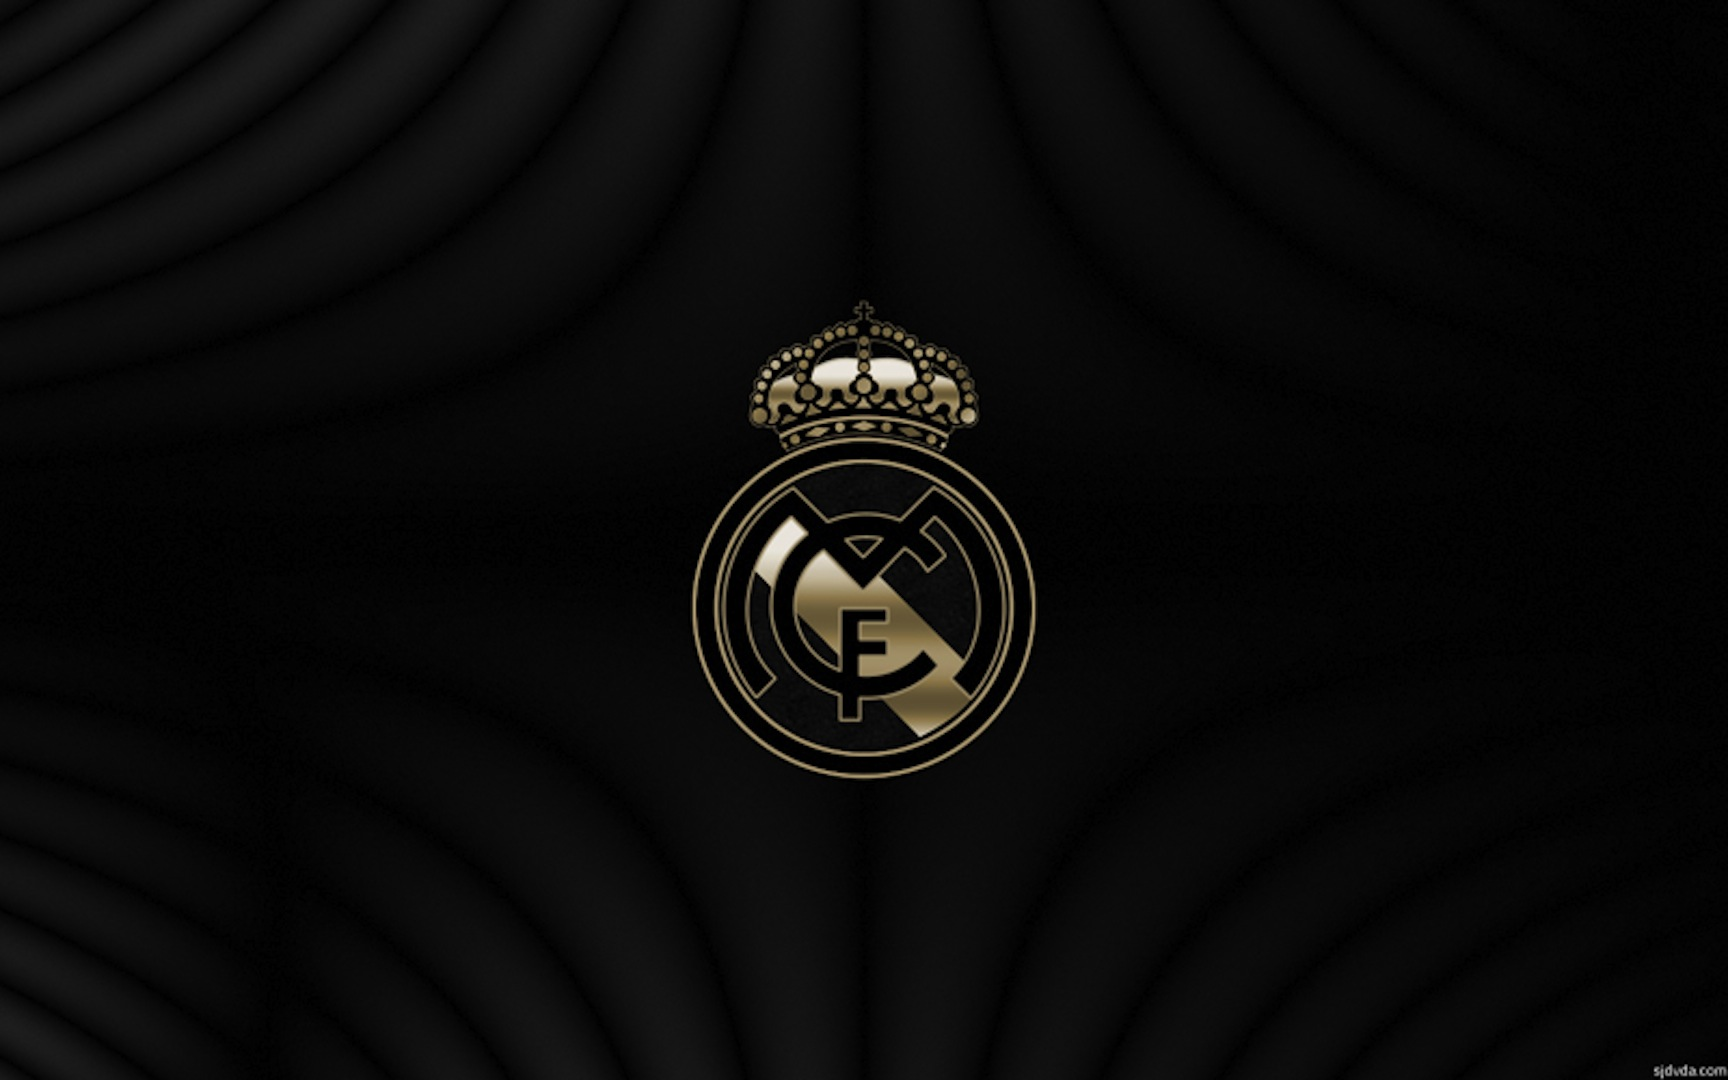 Real Madrid Logo 2016 Football Club Fotolip Com Rich